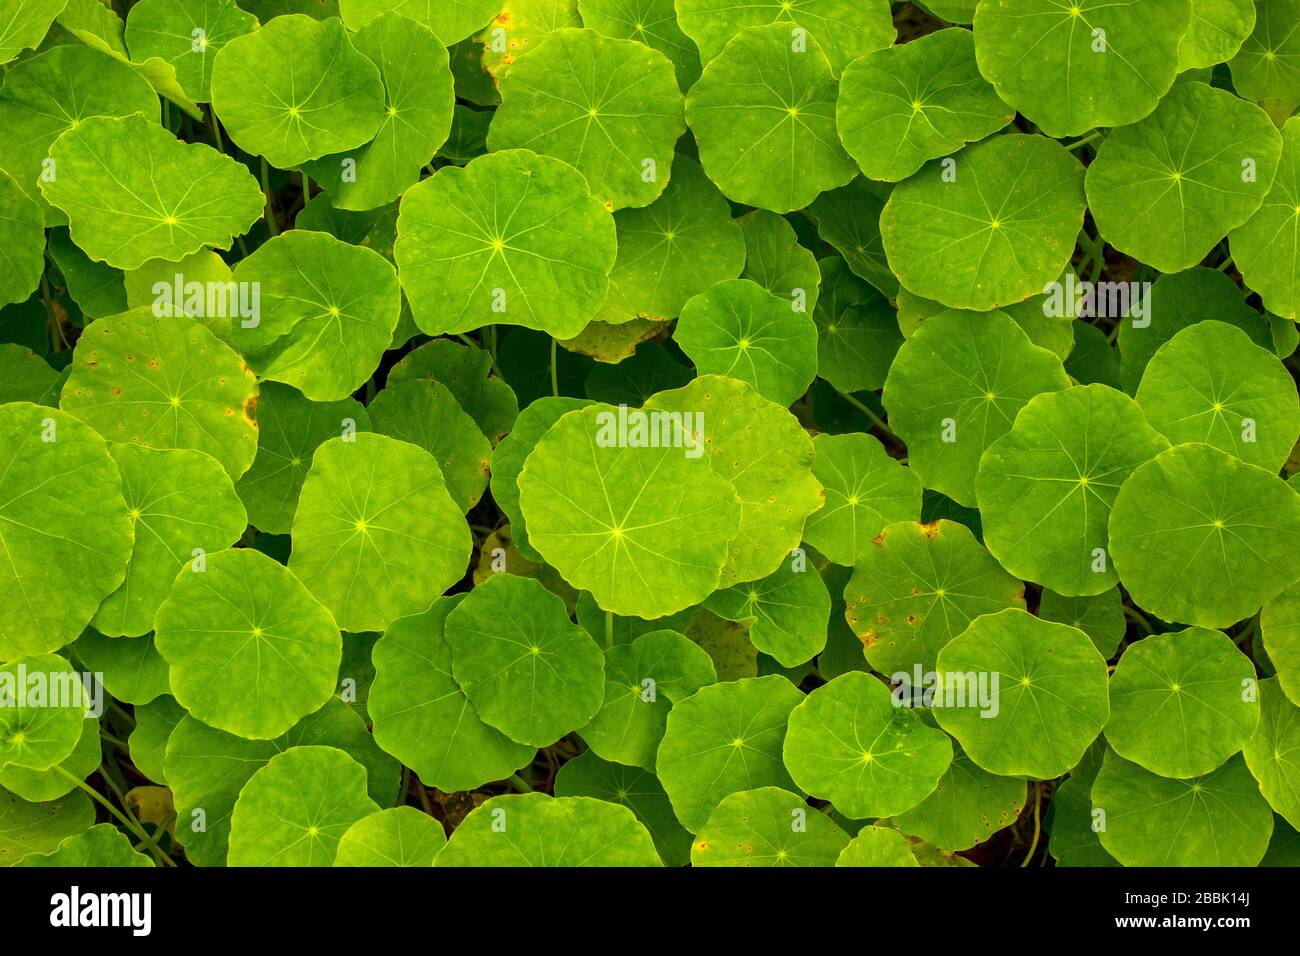 Bright Green Plants Growing In A Garden Stock Photo Alamy